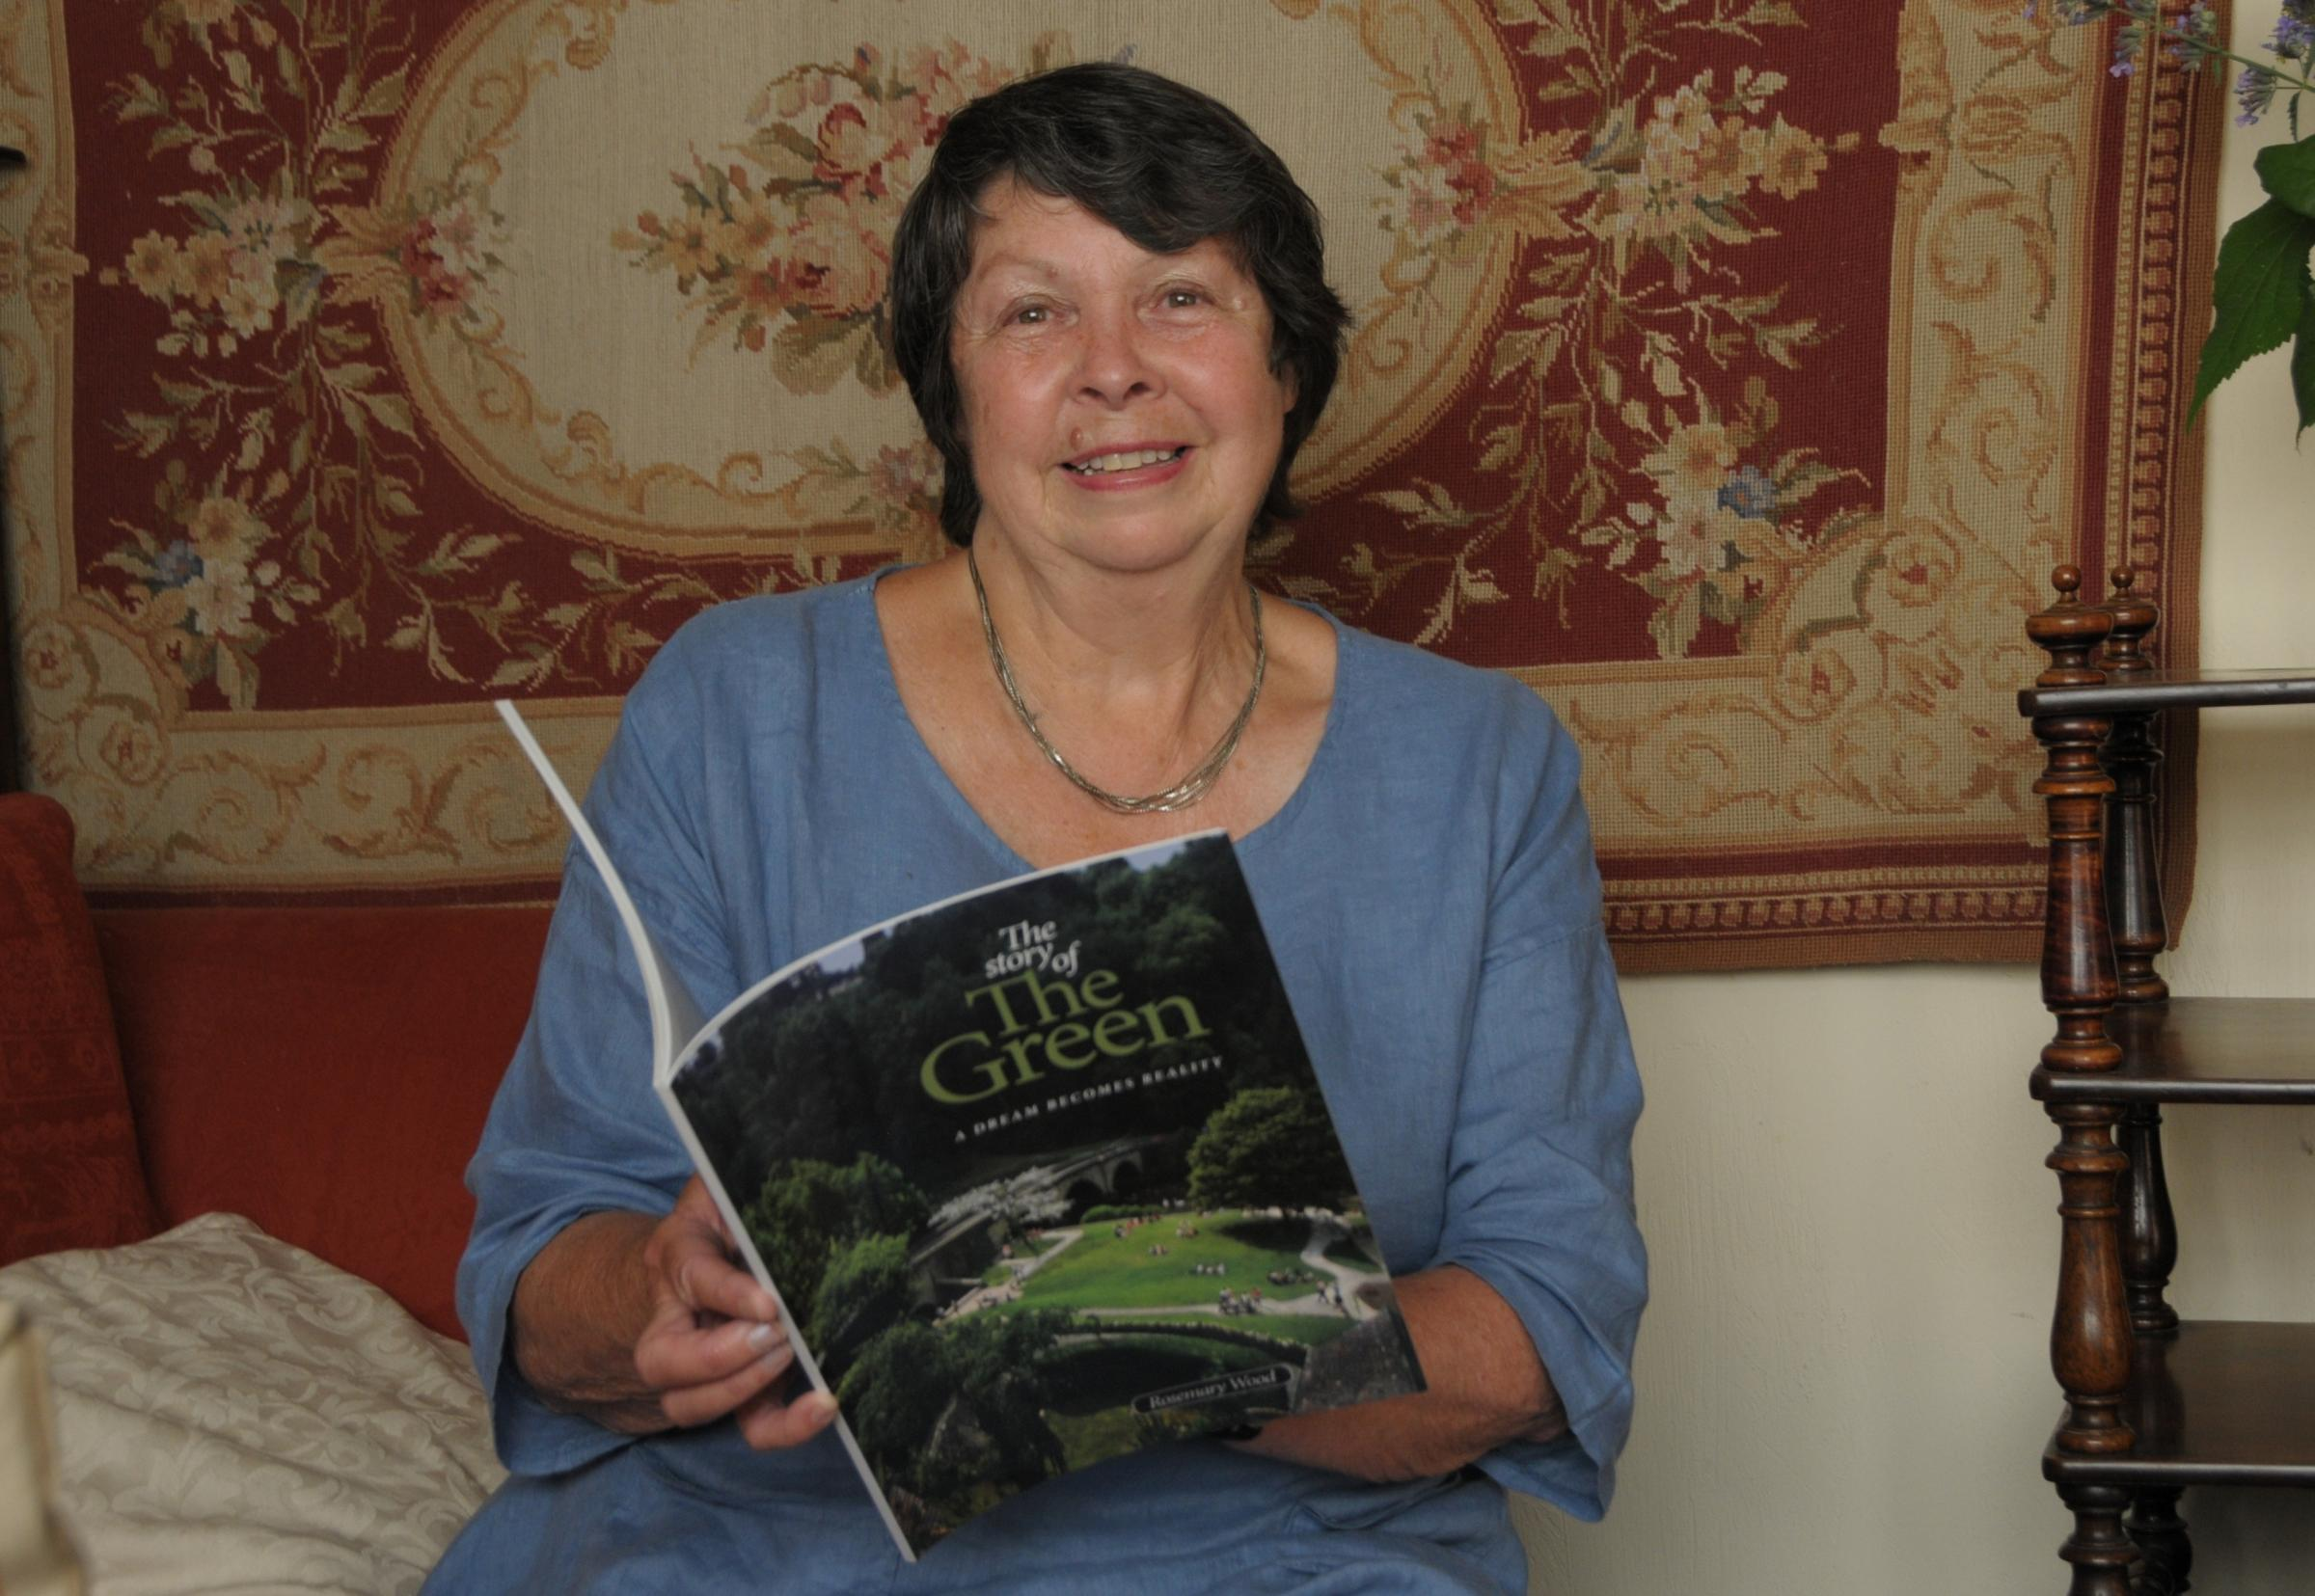 Rosemary Wood with the tribute book